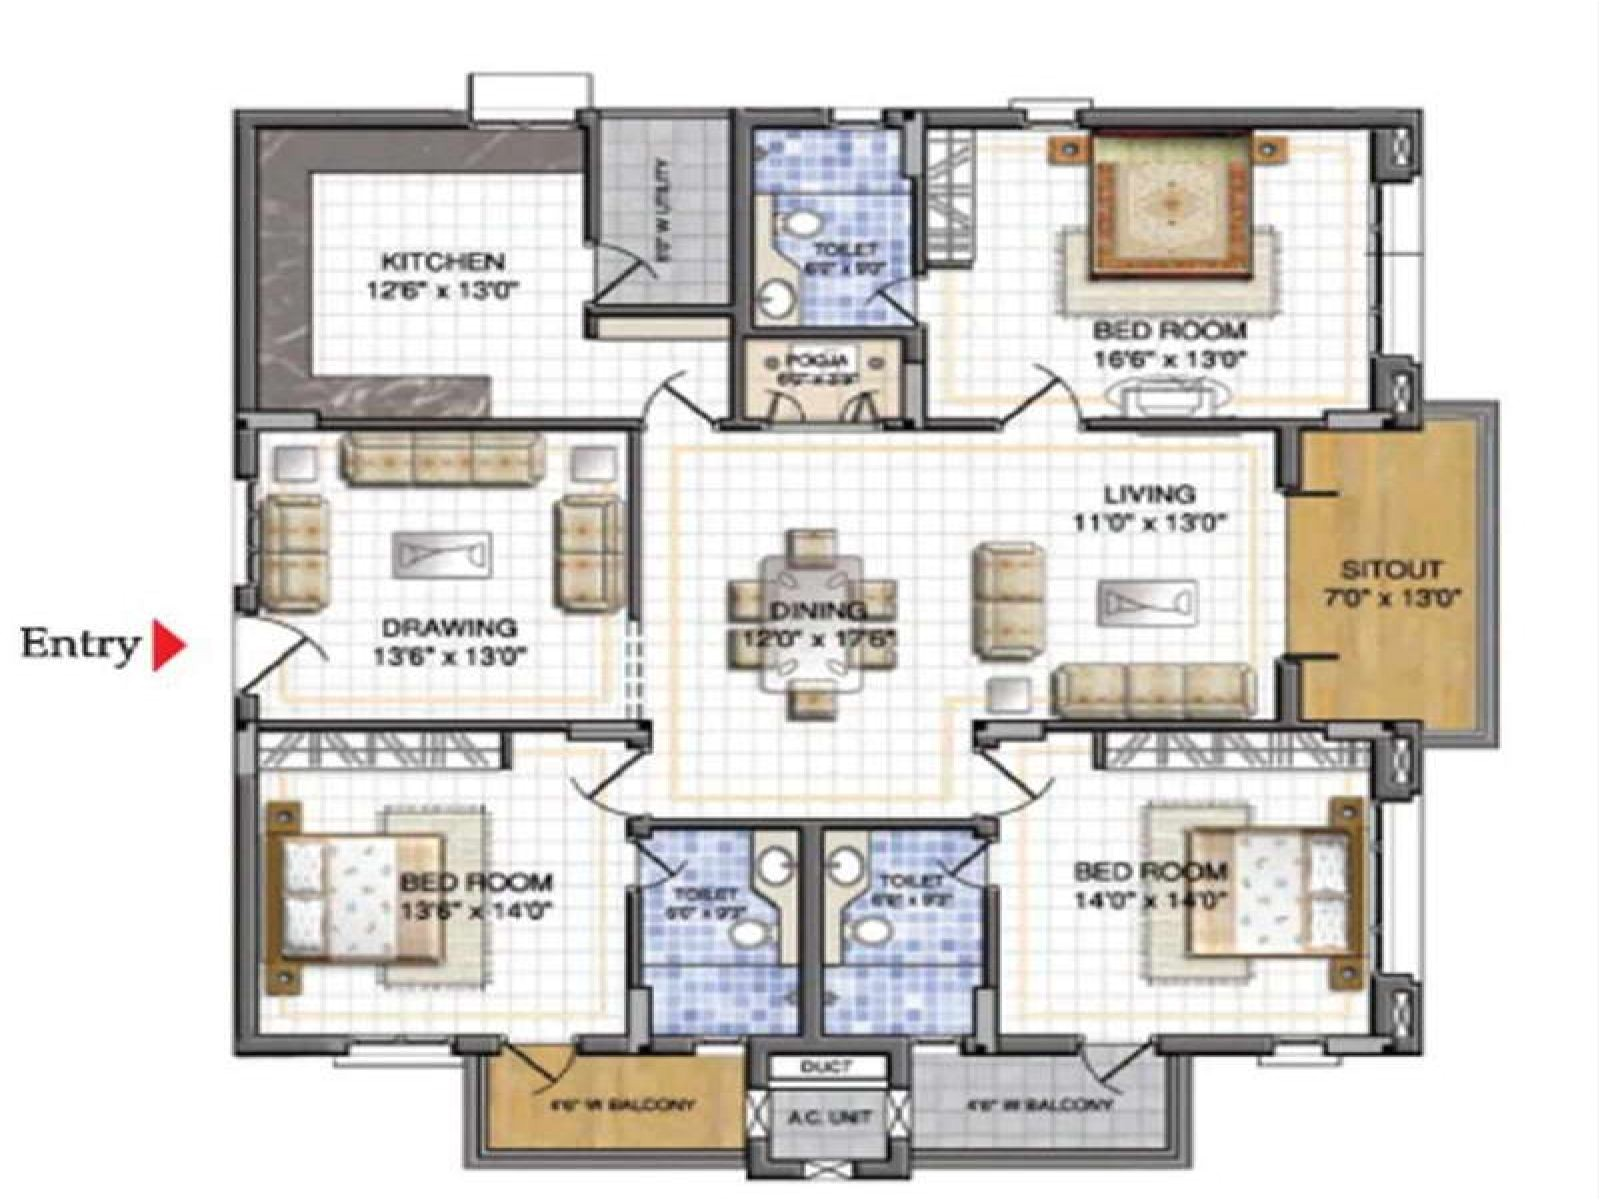 Draw 3d House Plans Online Sweet Home 3d Plans Google Search House